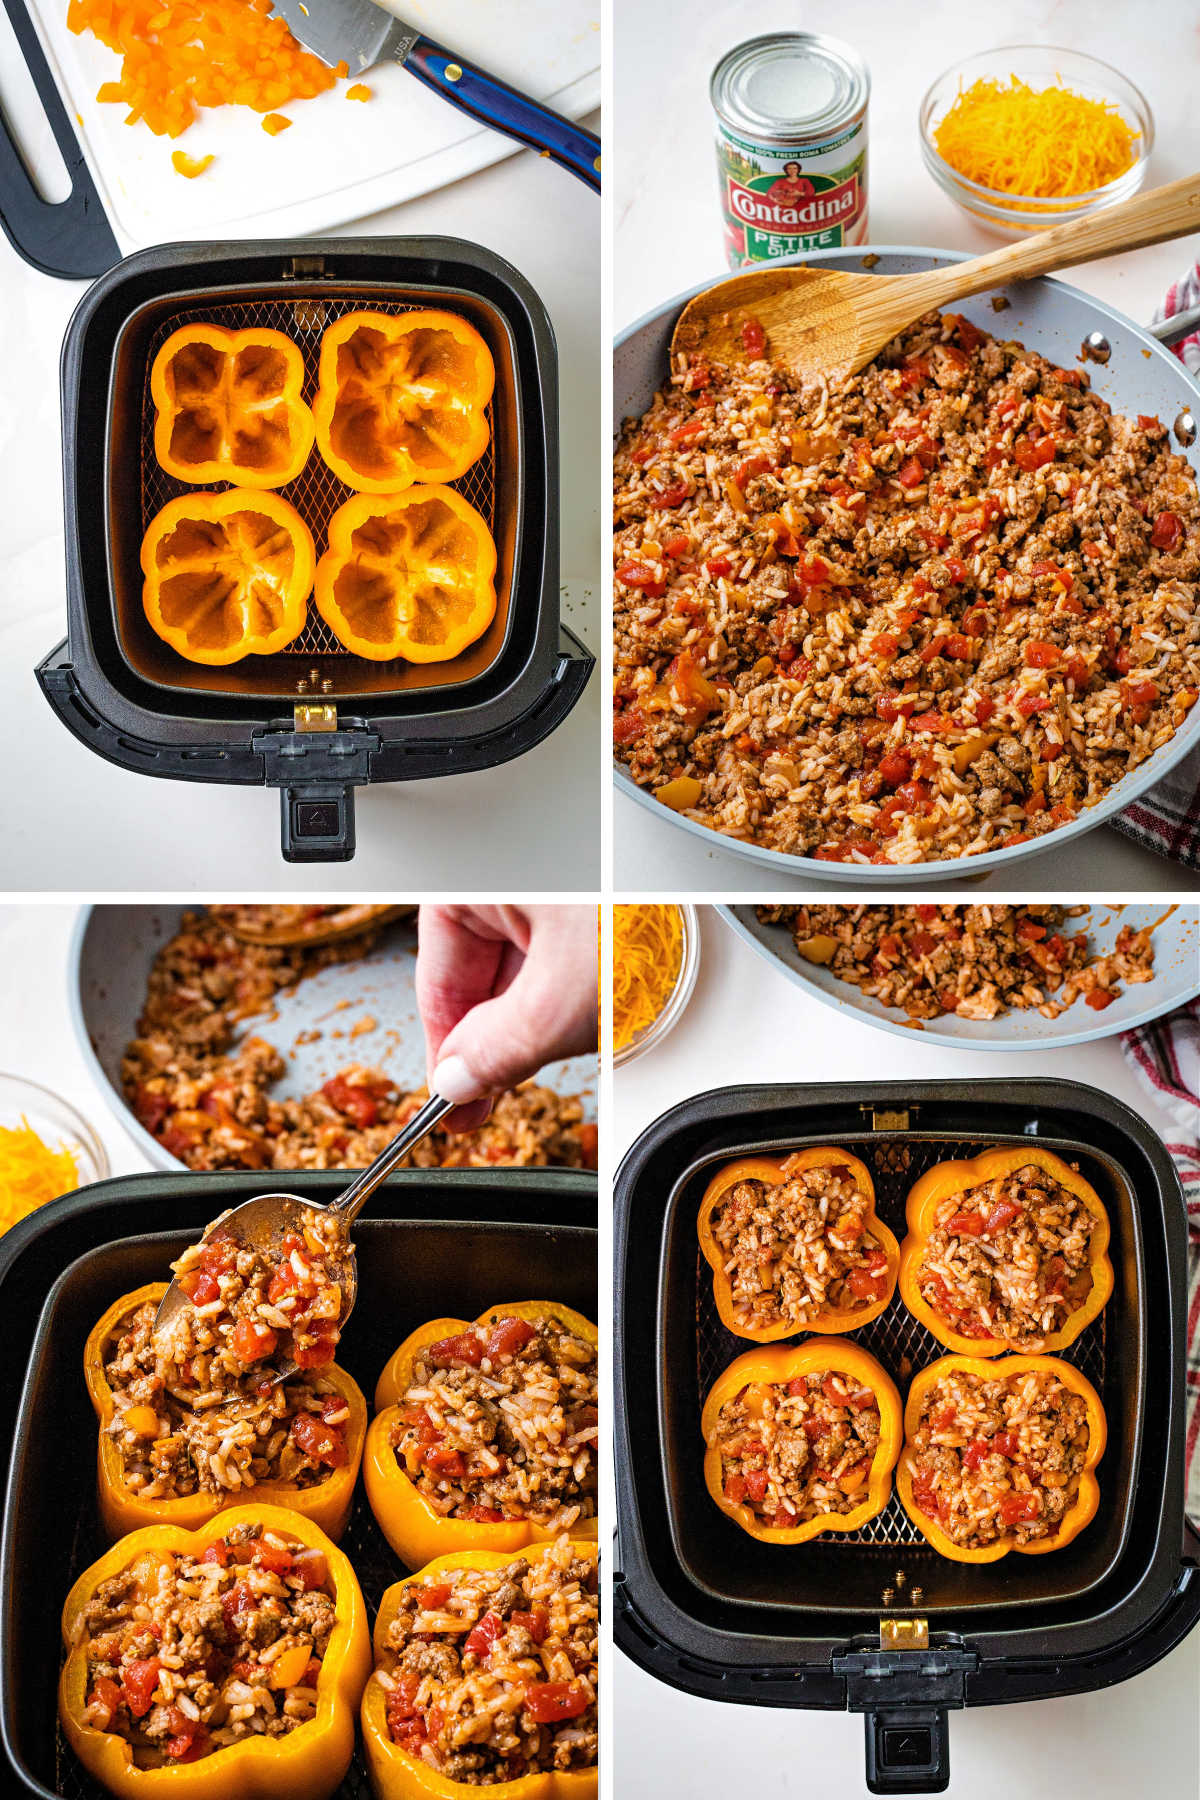 process steps for making air fryer stuffed peppers; pre-cook peppers in air fryer, saute ground beef filling; fill peppers with beef mixture.